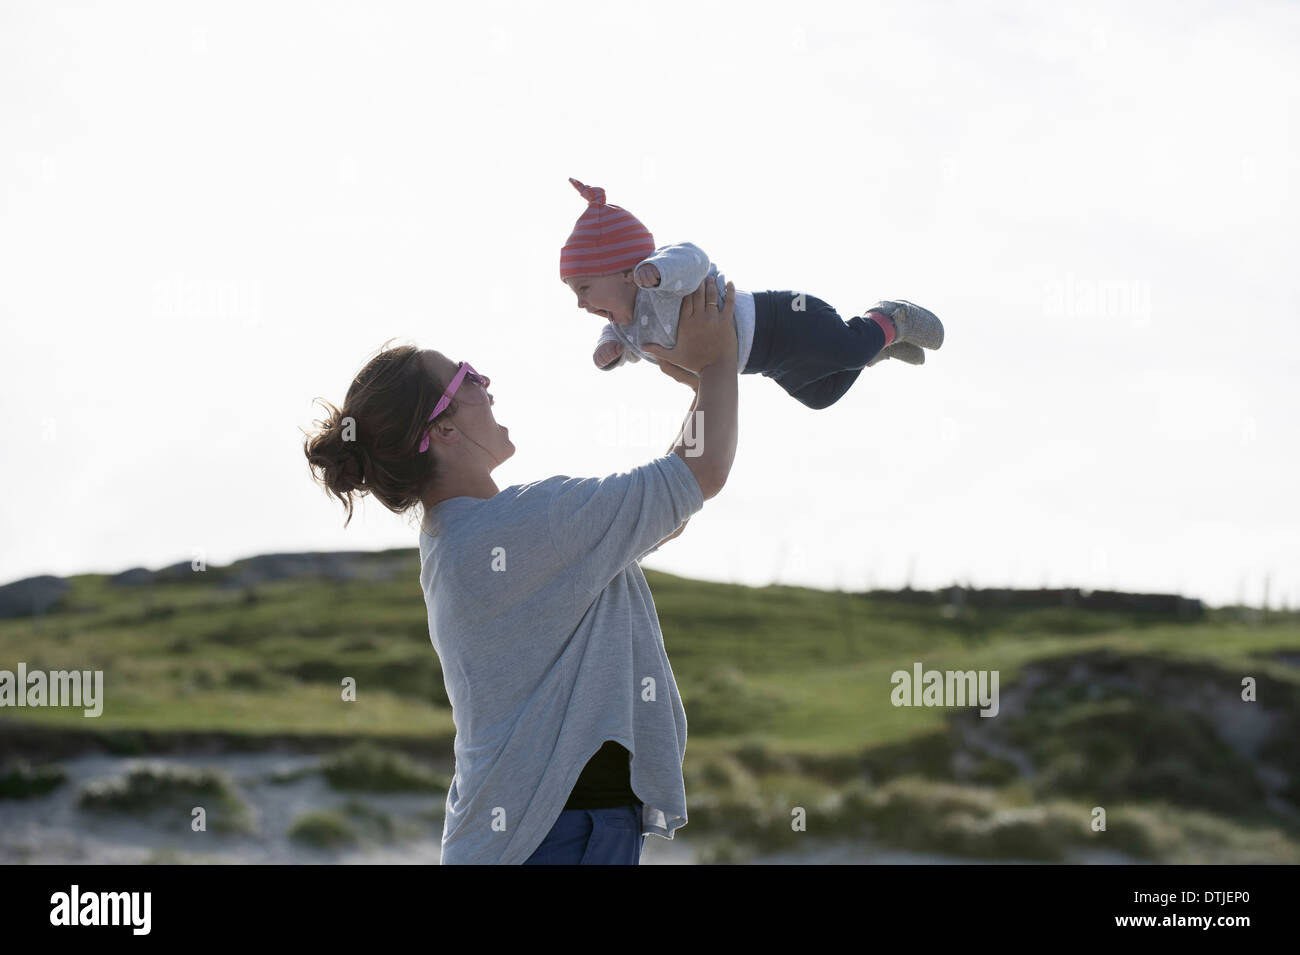 A mother raising her baby in the air At the seaside England - Stock Image